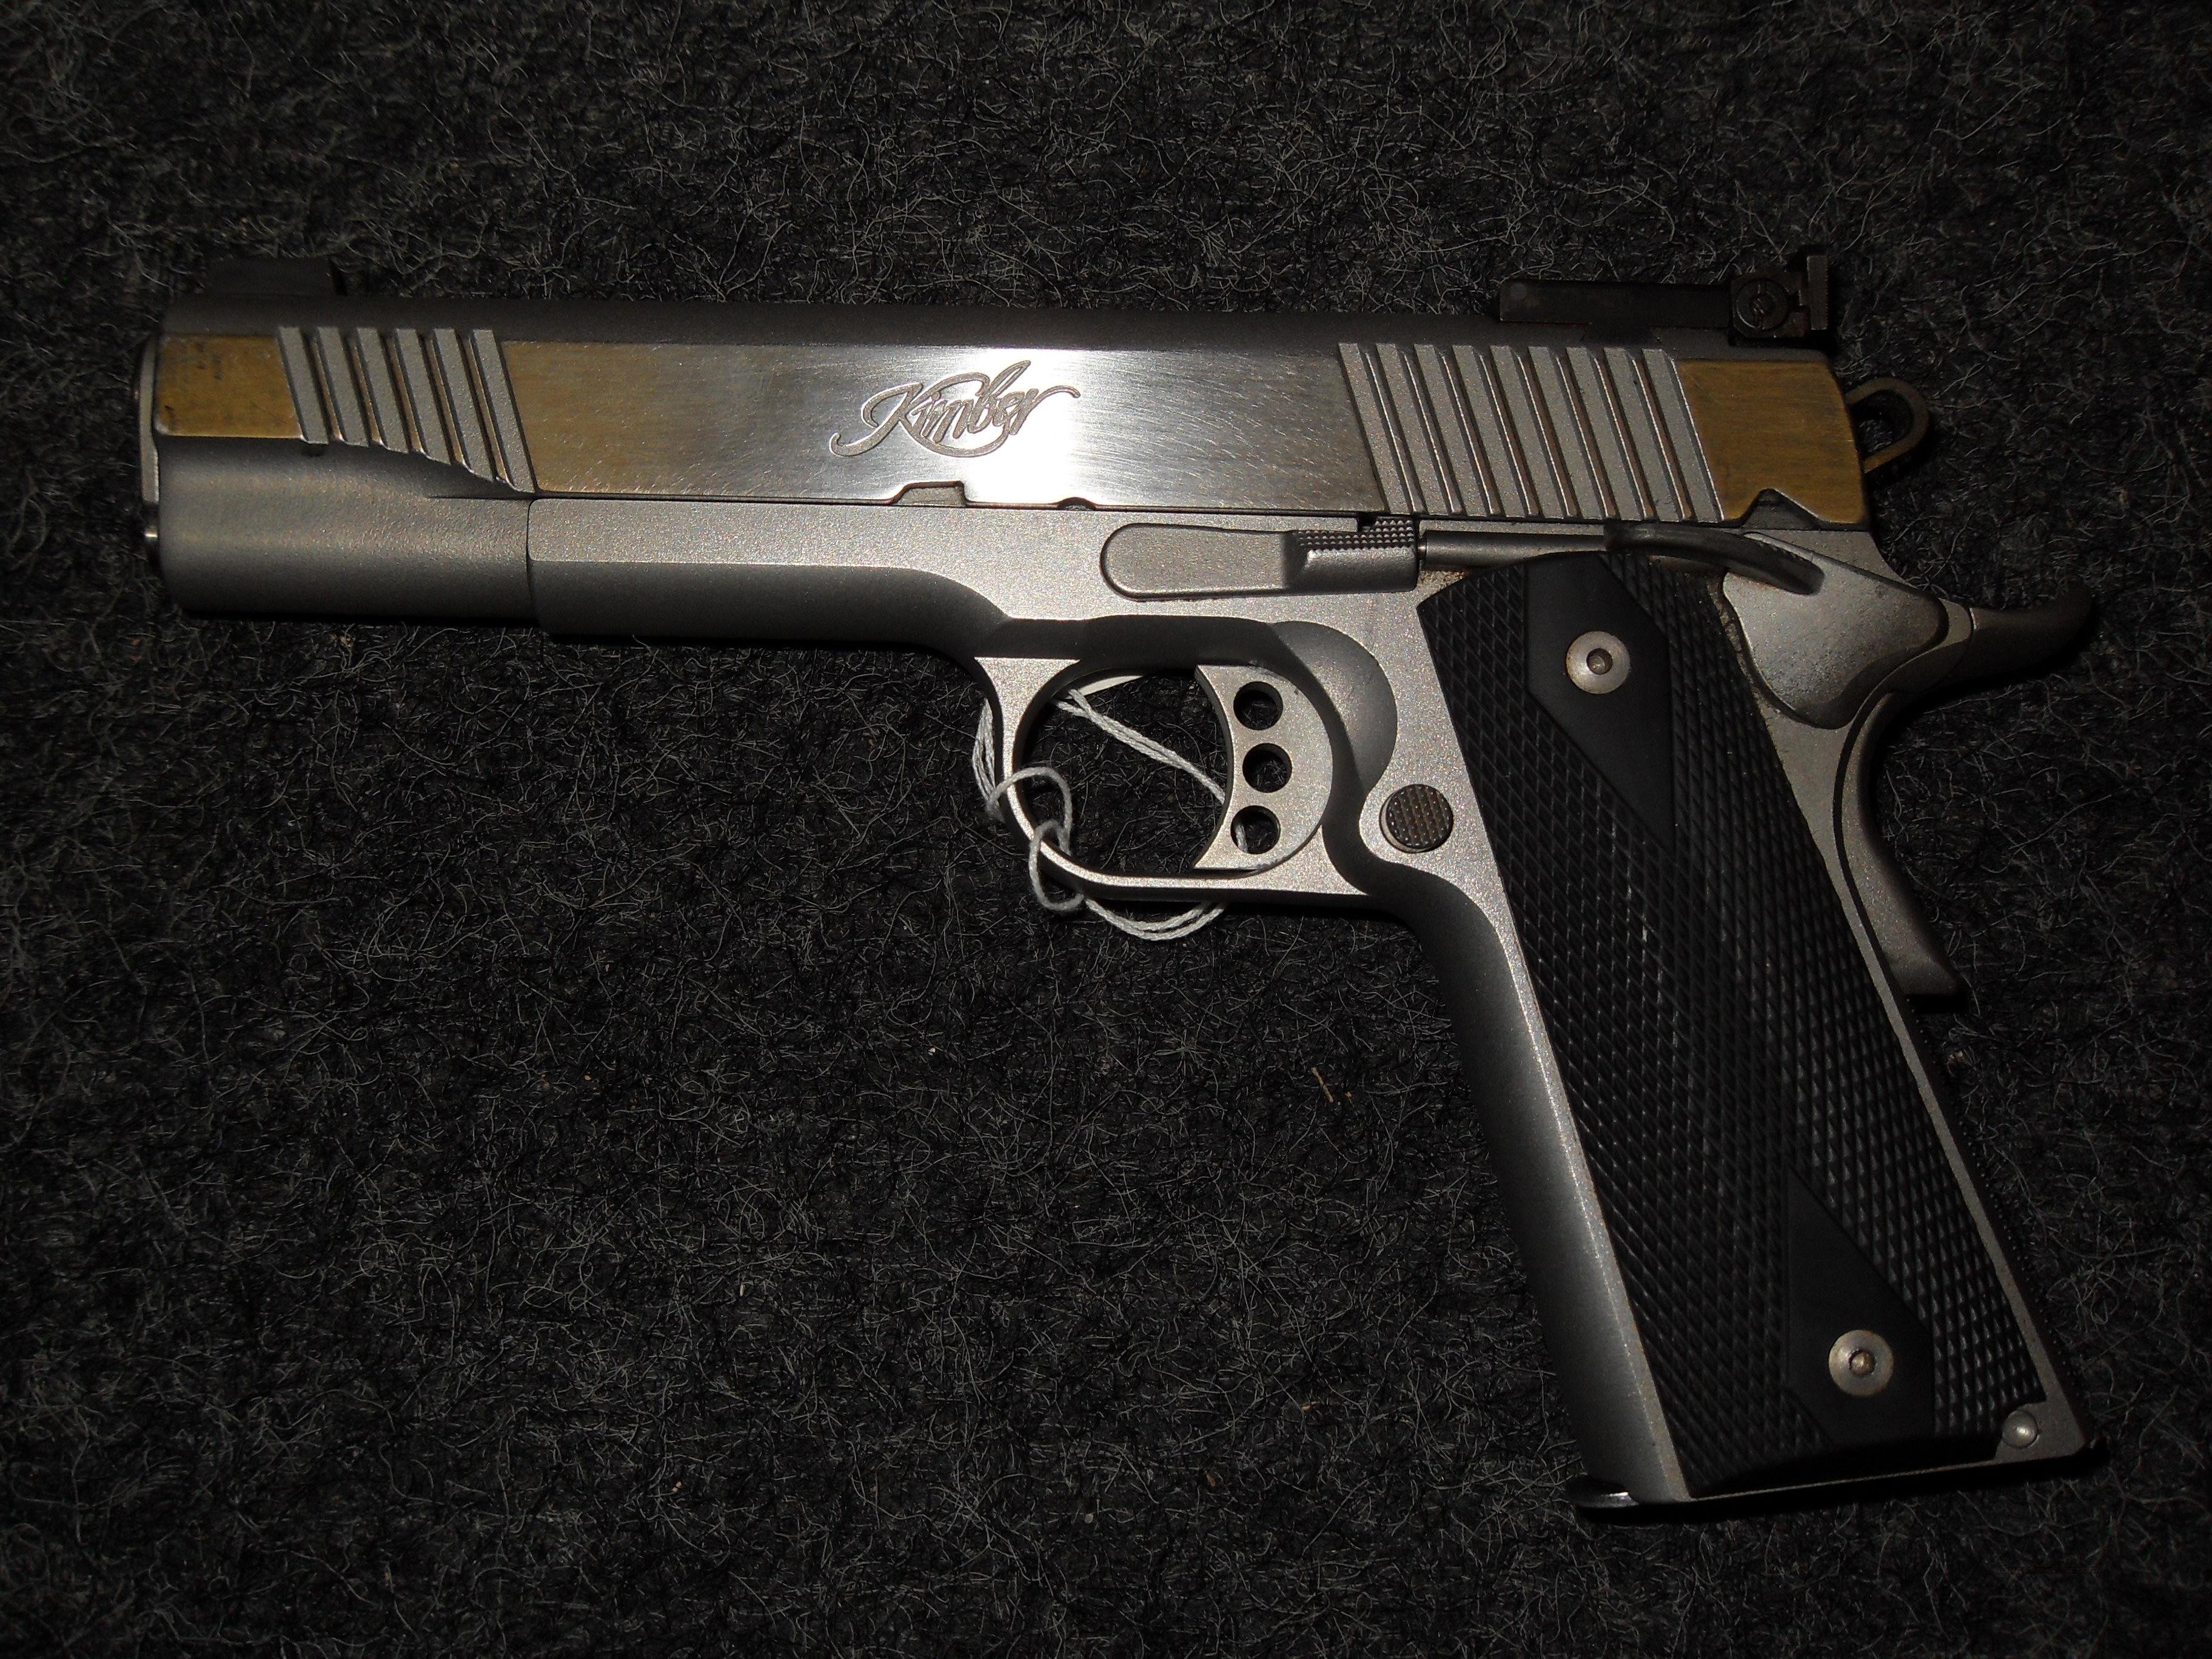 Kimber Classic Stainless Target FREE SHIPPING  Guns > Pistols > Kimber of America Pistols